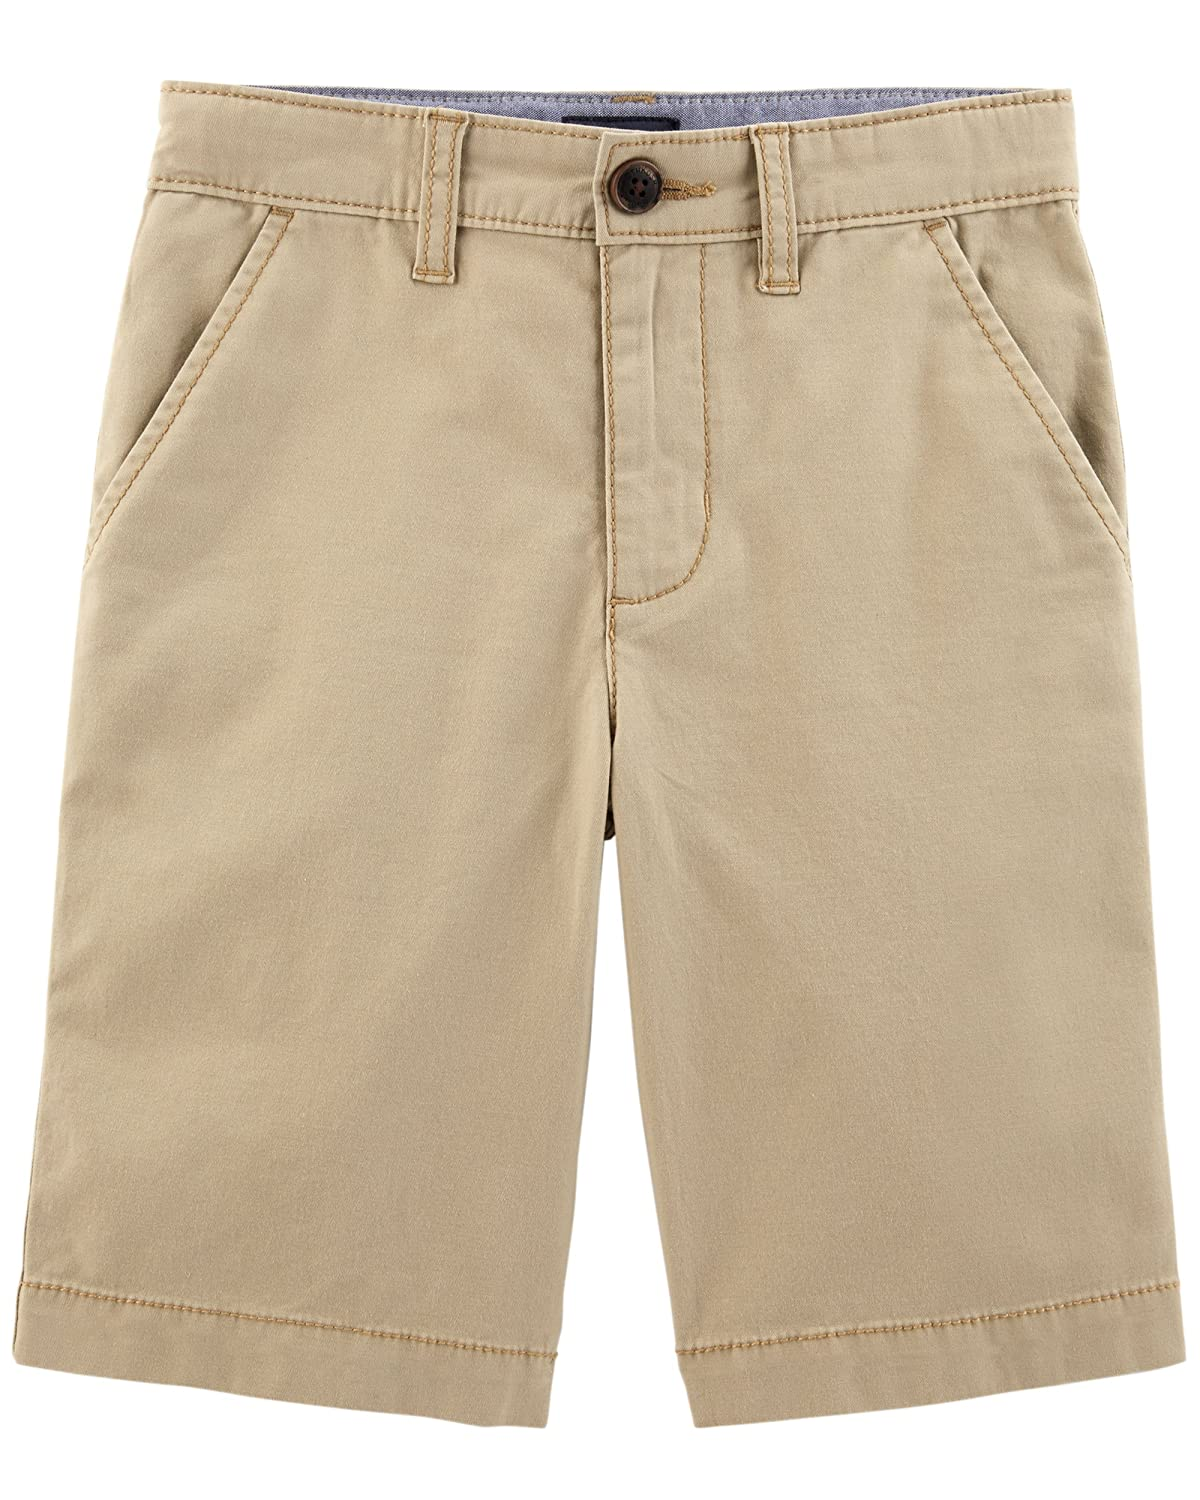 OshKosh B'Gosh Boys' Stretch Flat Front Short Osh Kosh